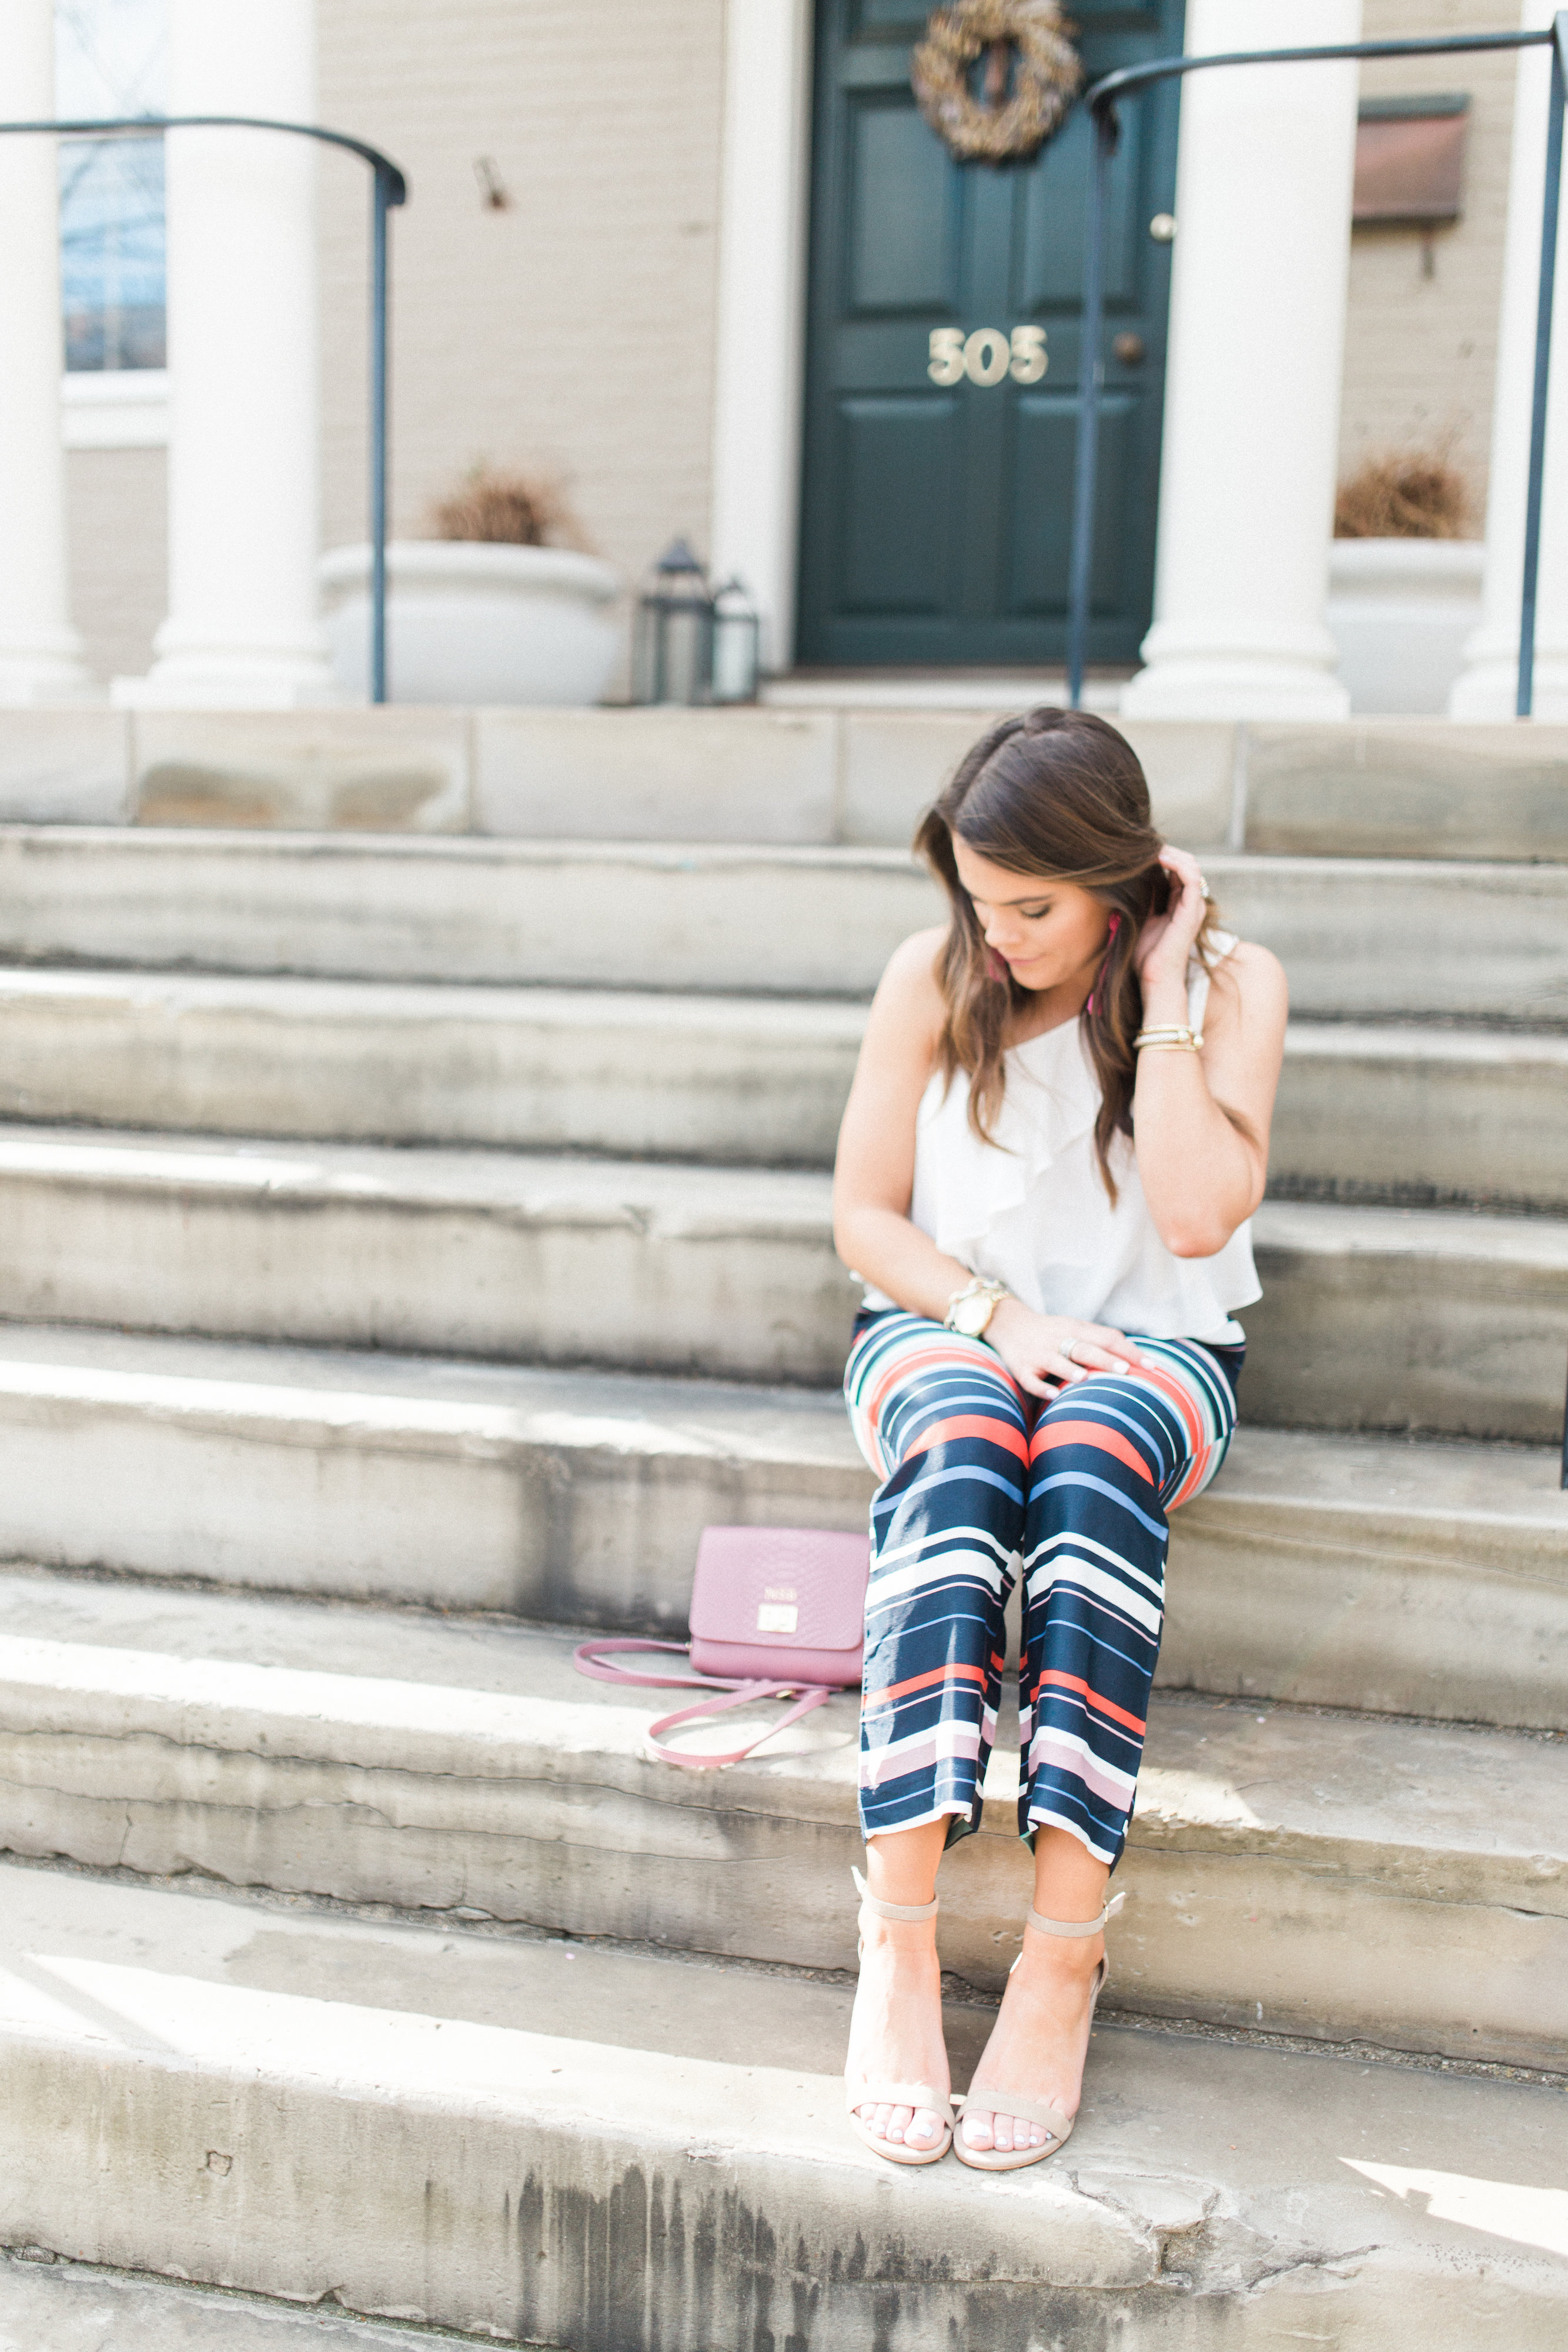 How to wear printed pants for spring // LOFT Stripe Pants / Spring style inspiration via Glitter & Gingham / Spring outfit idea // Ft. LOFT, Urban Outfitters, GiGi New York